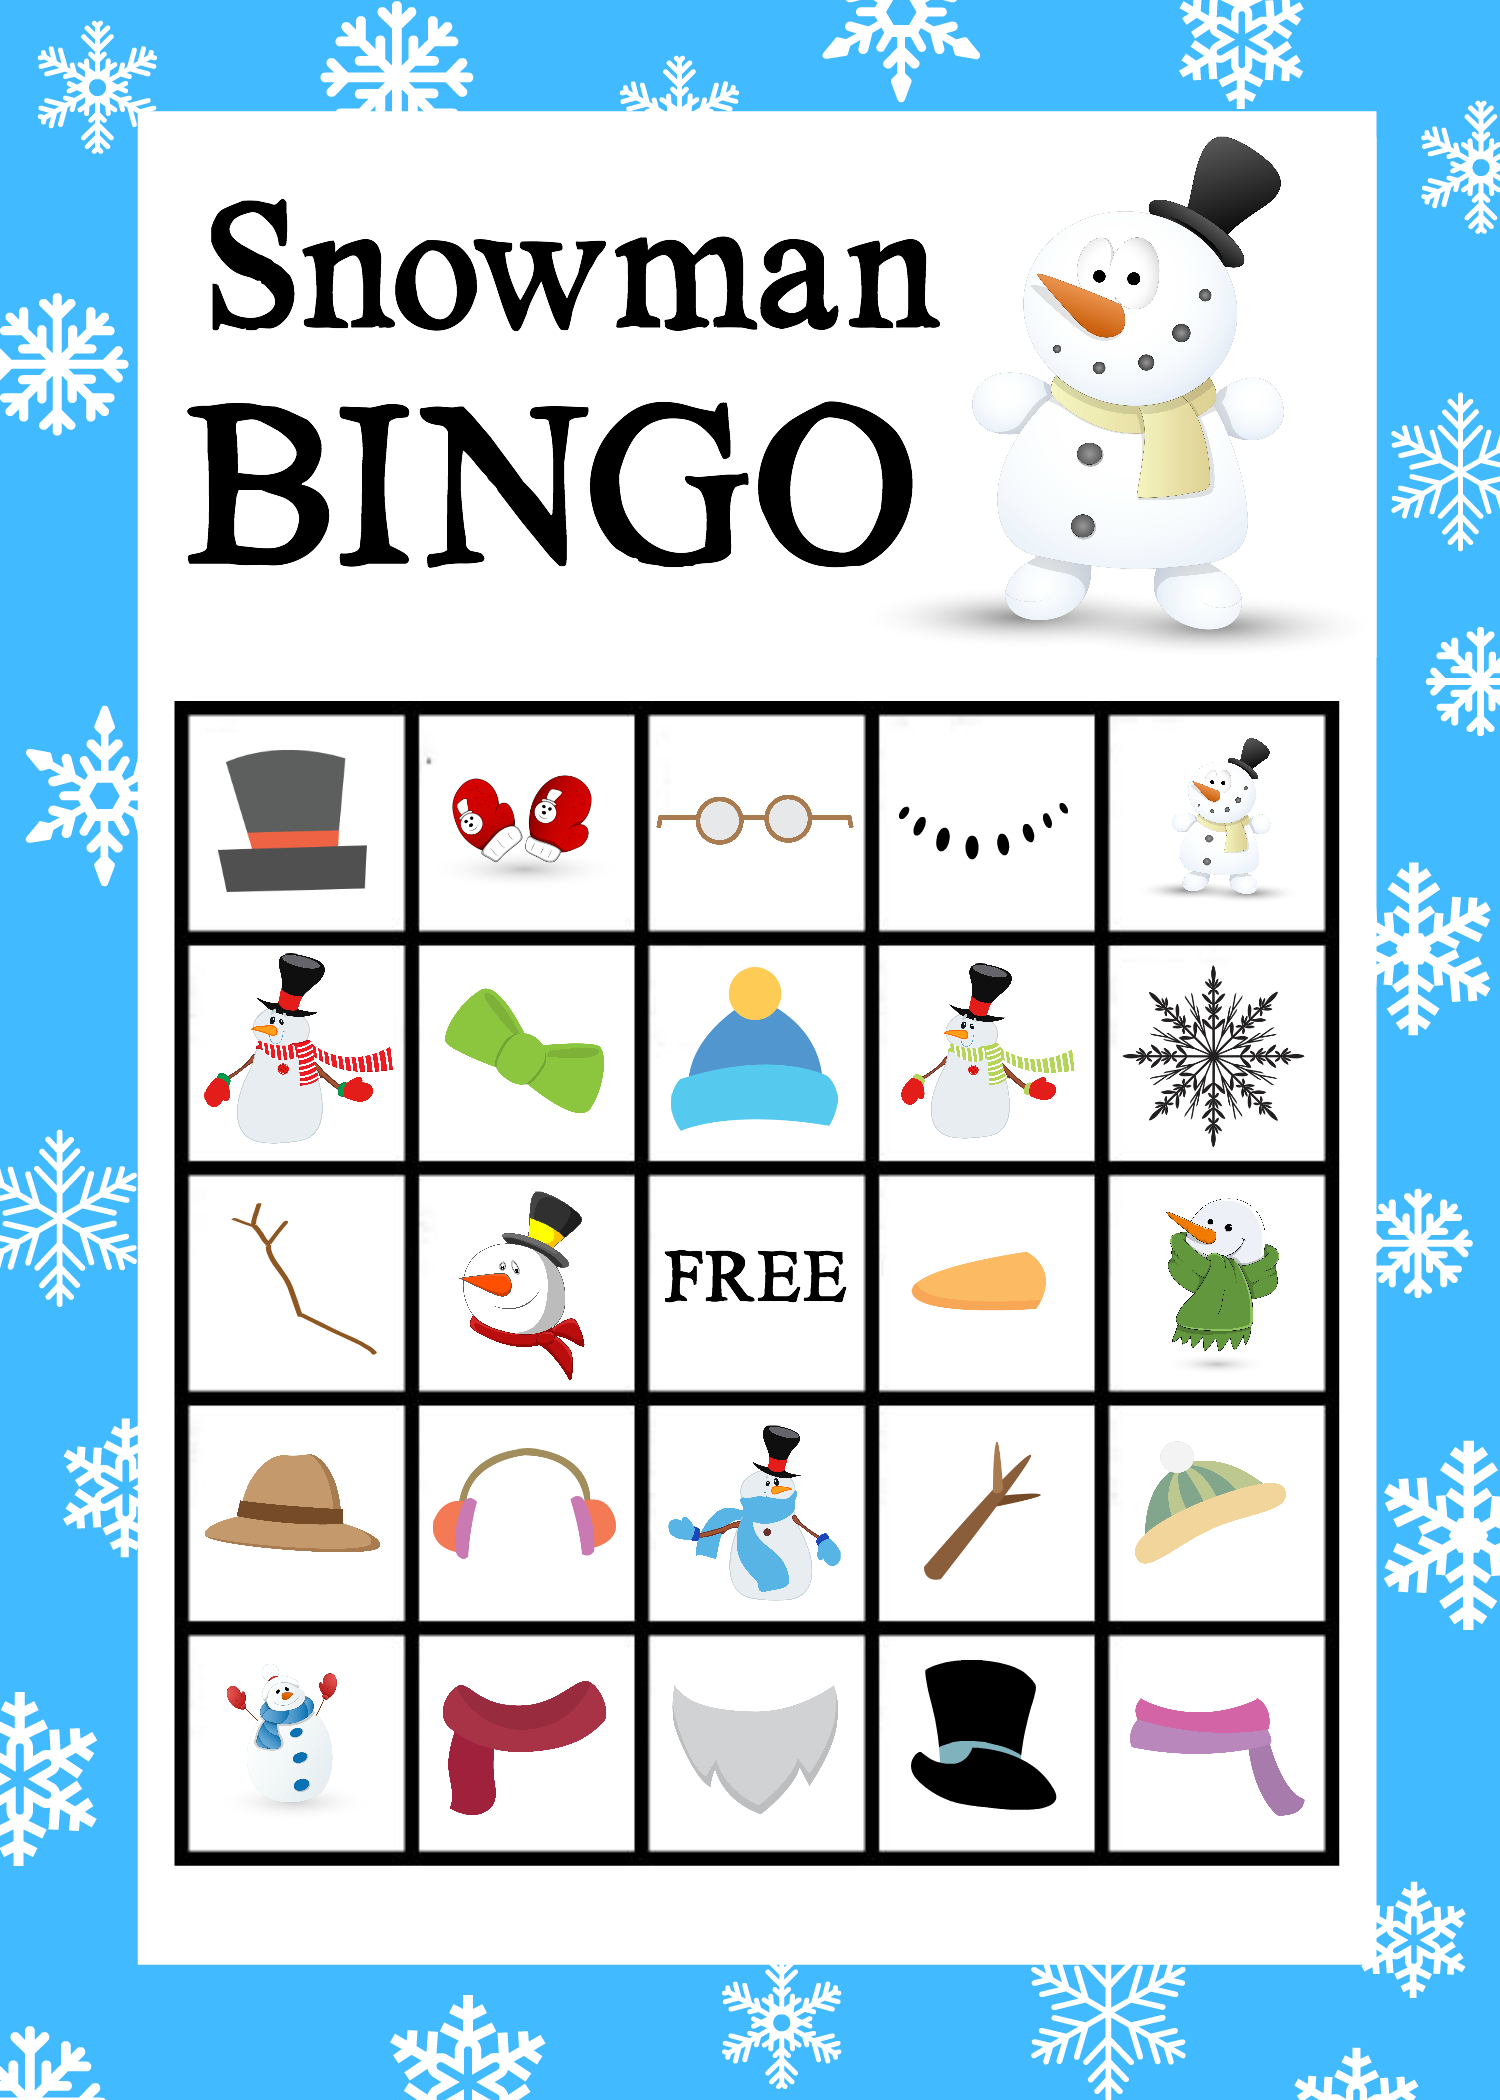 A Game For Free : Printable snowman bingo game crazy little projects